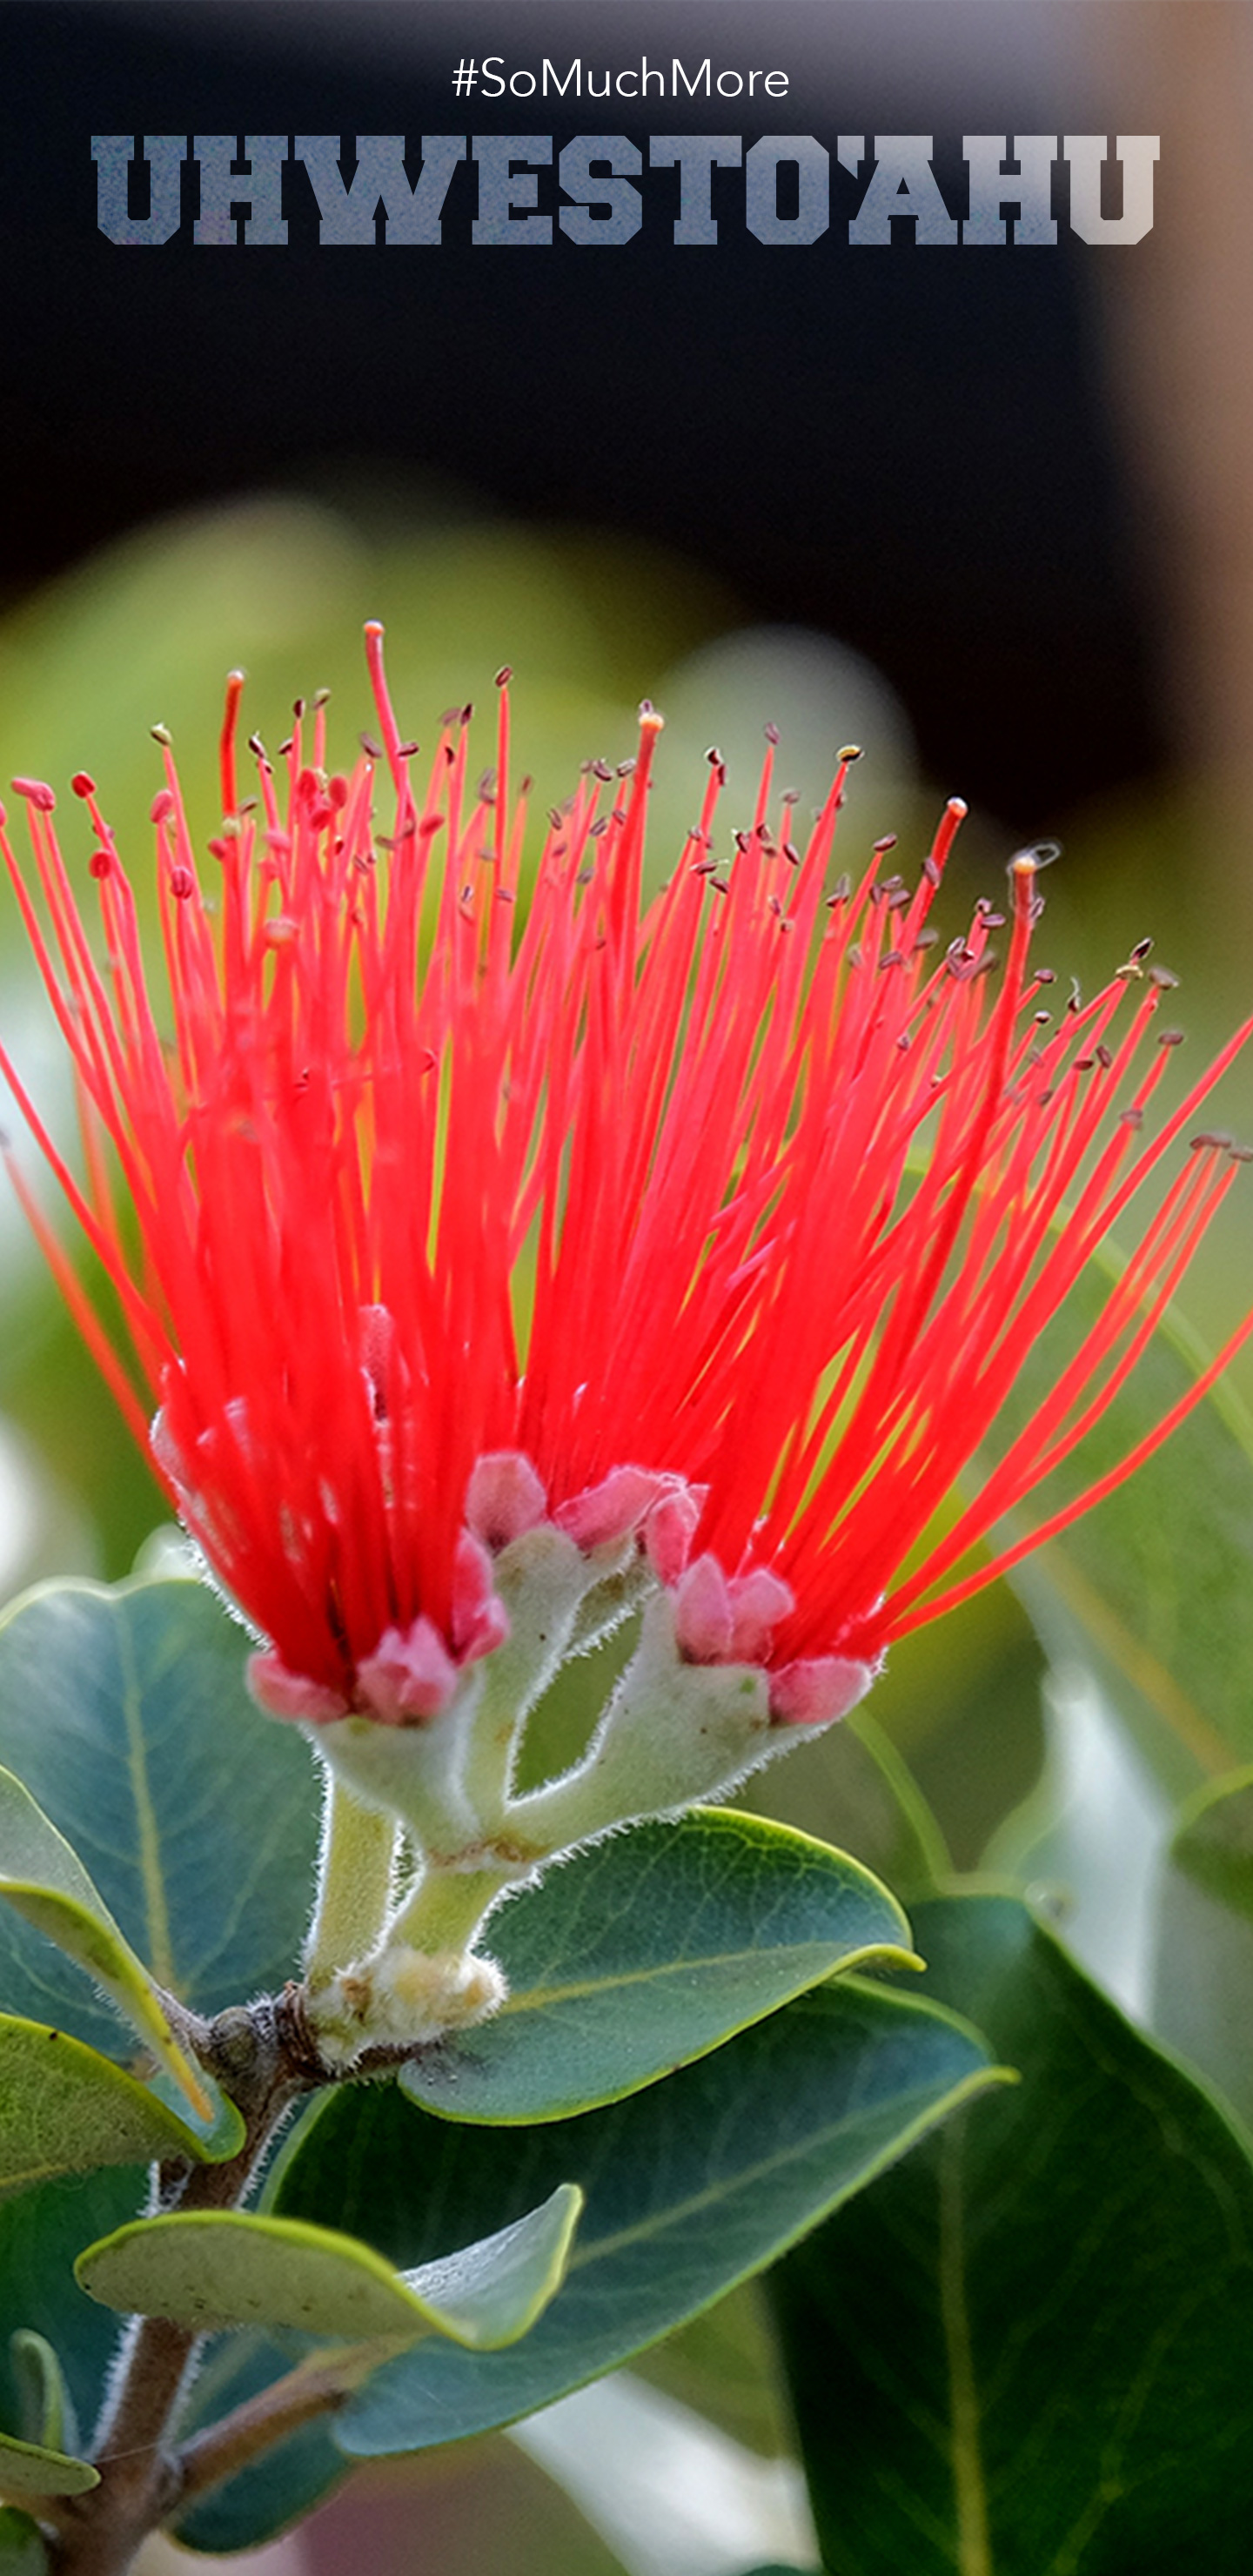 The Red Lehua Flower In The Campus Mala.